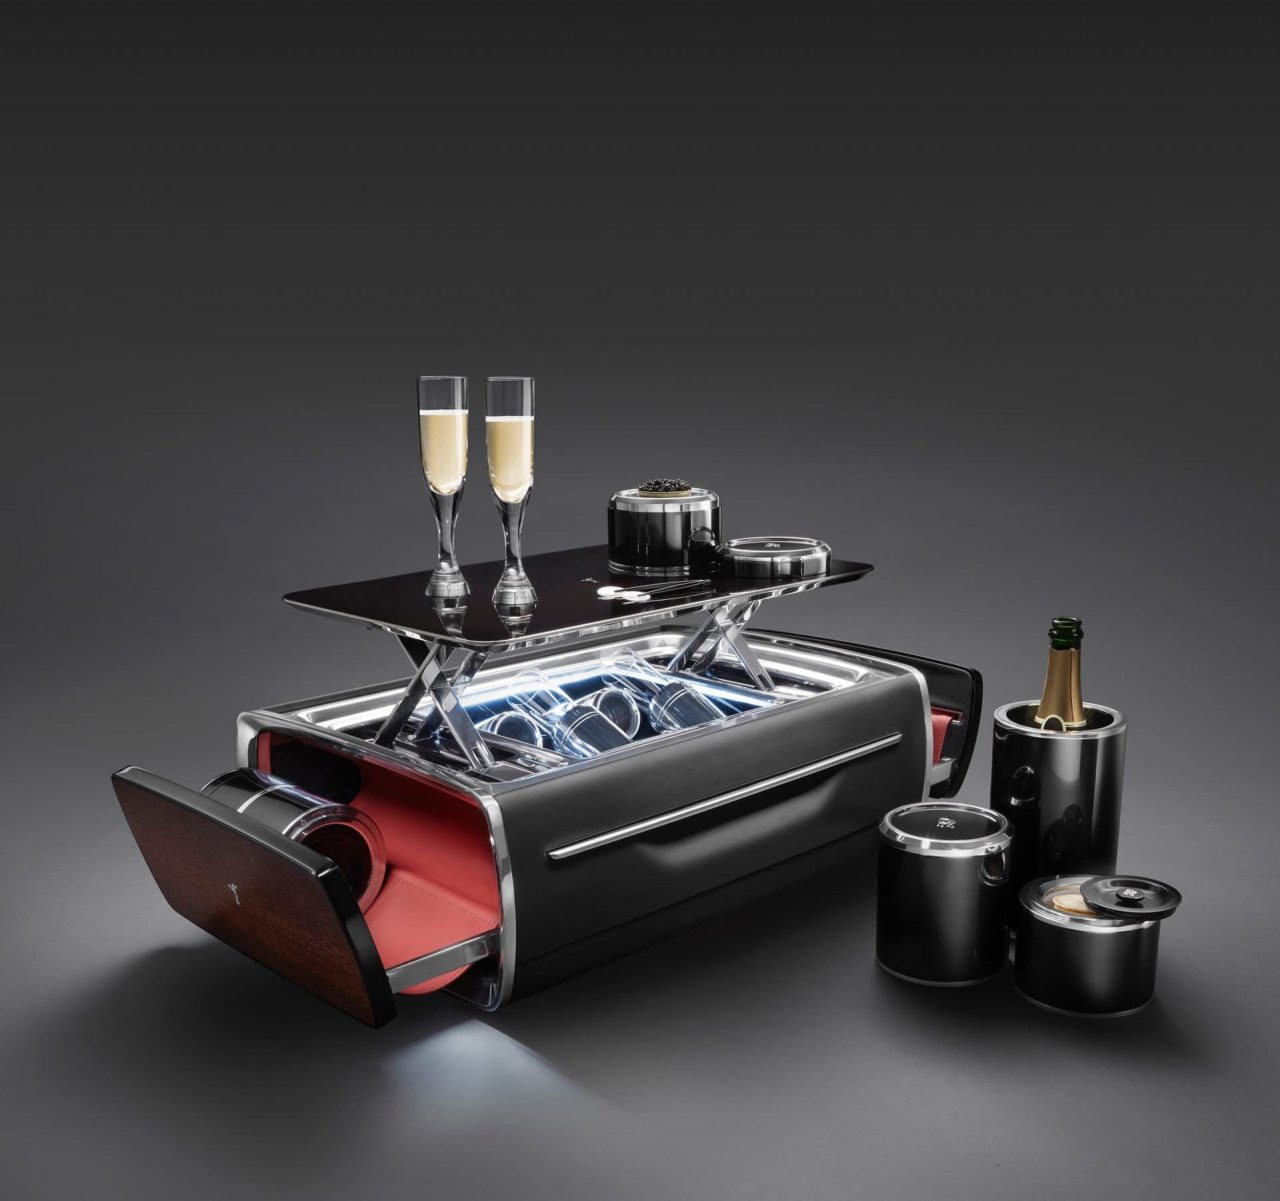 Rolls-Royce Boutique champagne chest